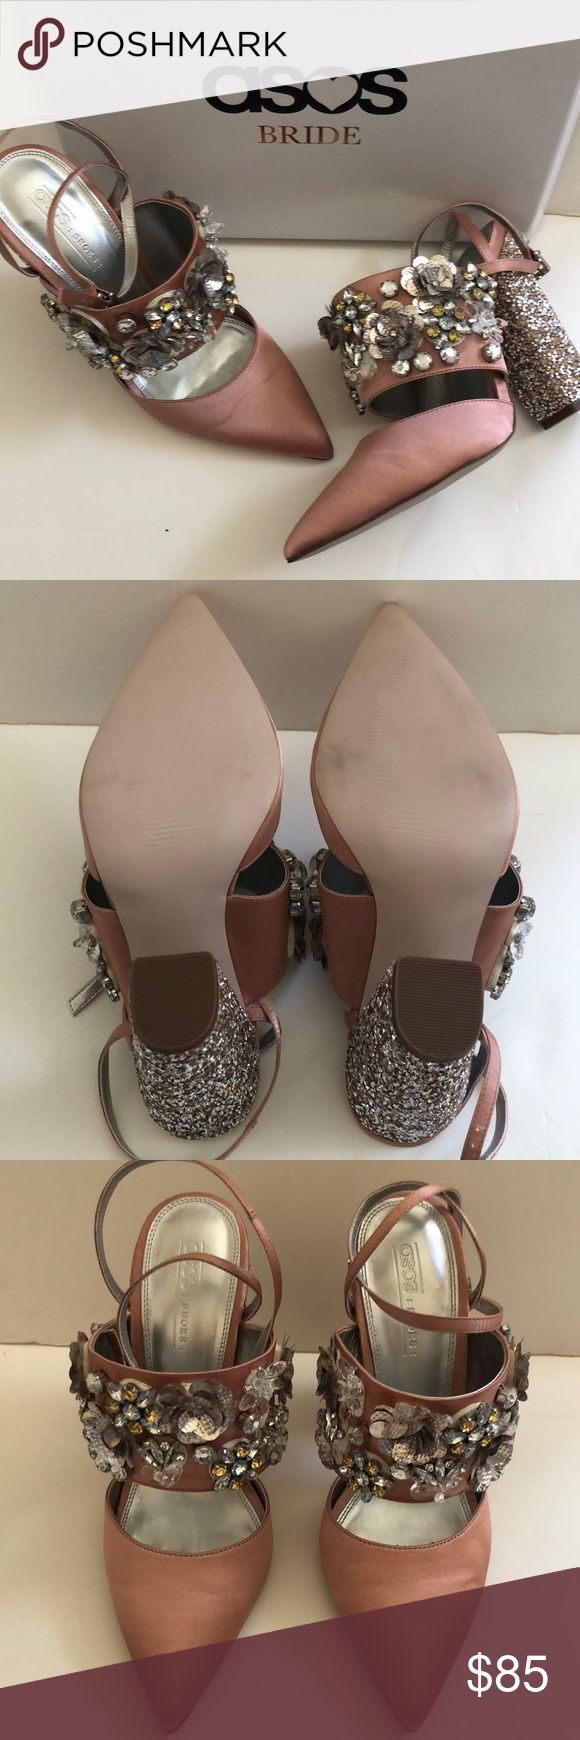 ASOS Bridal shoes - Papaya ASOS bridal shoes, size 8.5 US / 7 UK Papaya - blush satin pointed toe with embellishments  3D flowers and rhinestones  NEW in box never worn High heel and ready for a party ASOS Shoes Heels